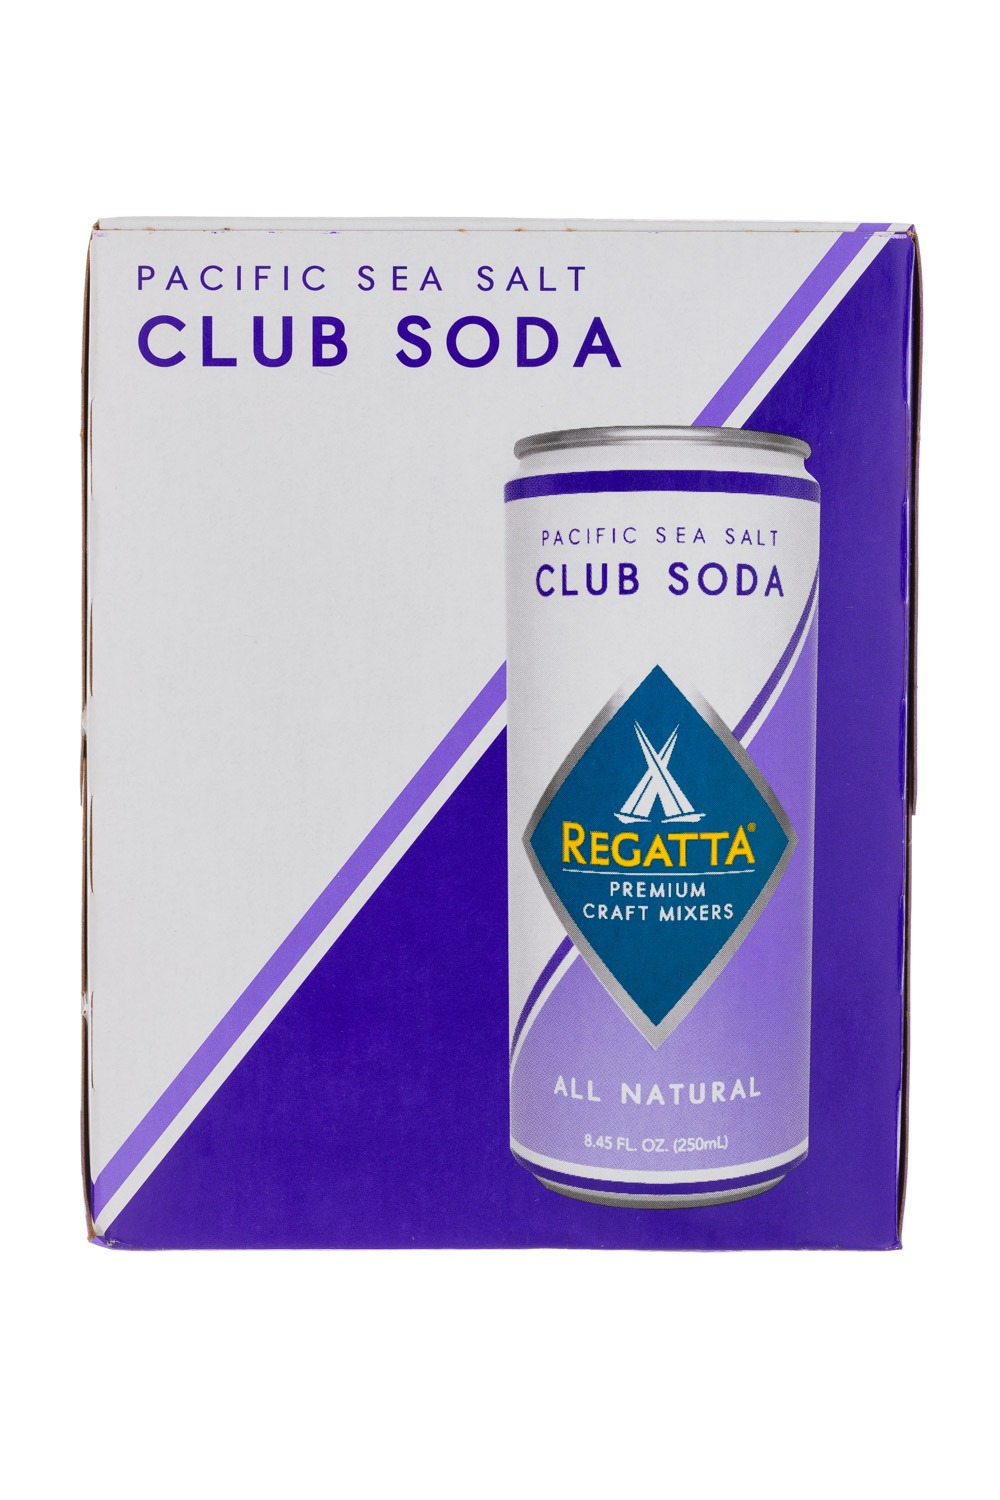 Pacific Sea Salt Club Soda (4 pack)